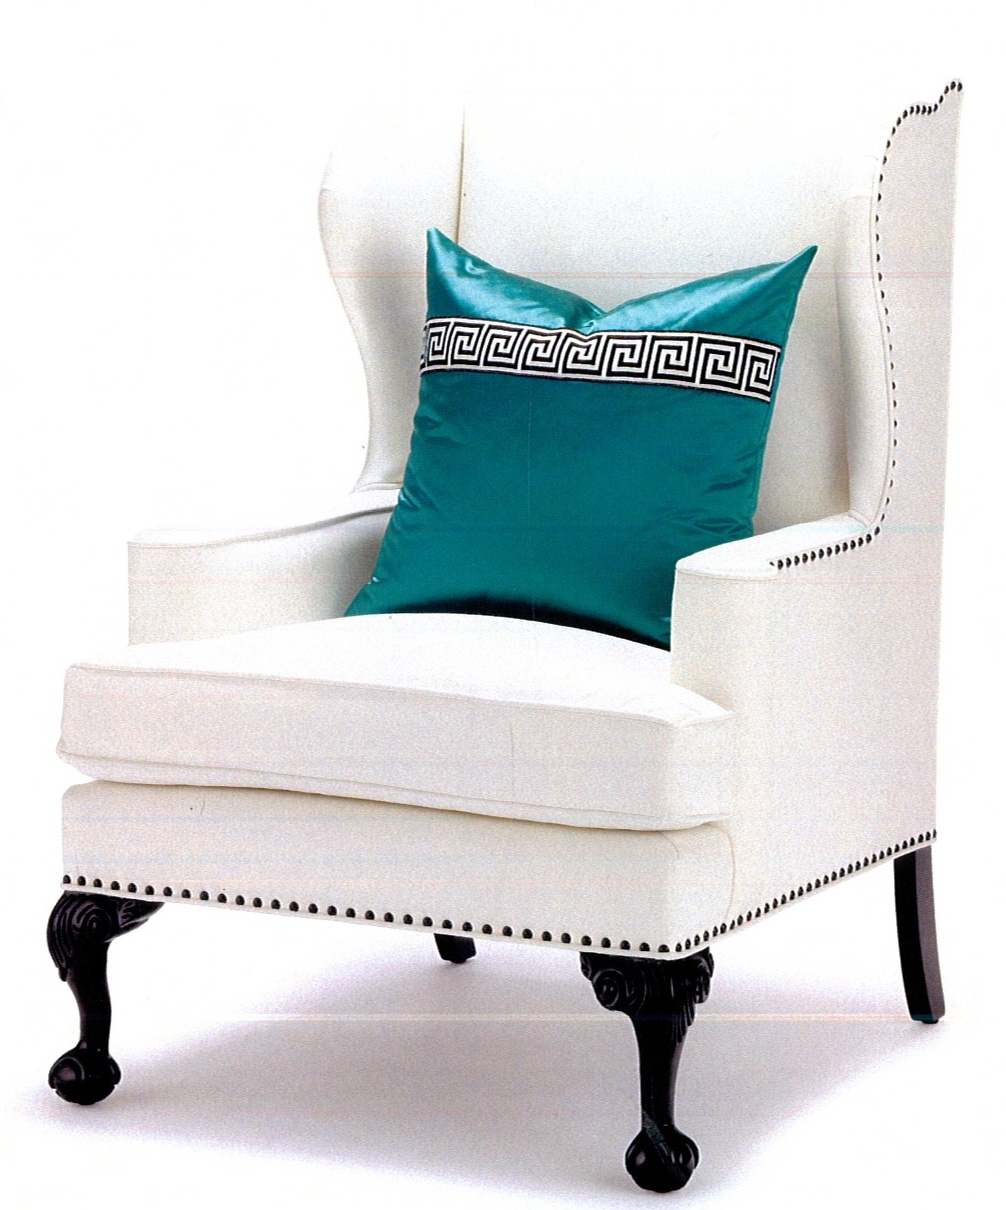 paris wing chair by pal smith